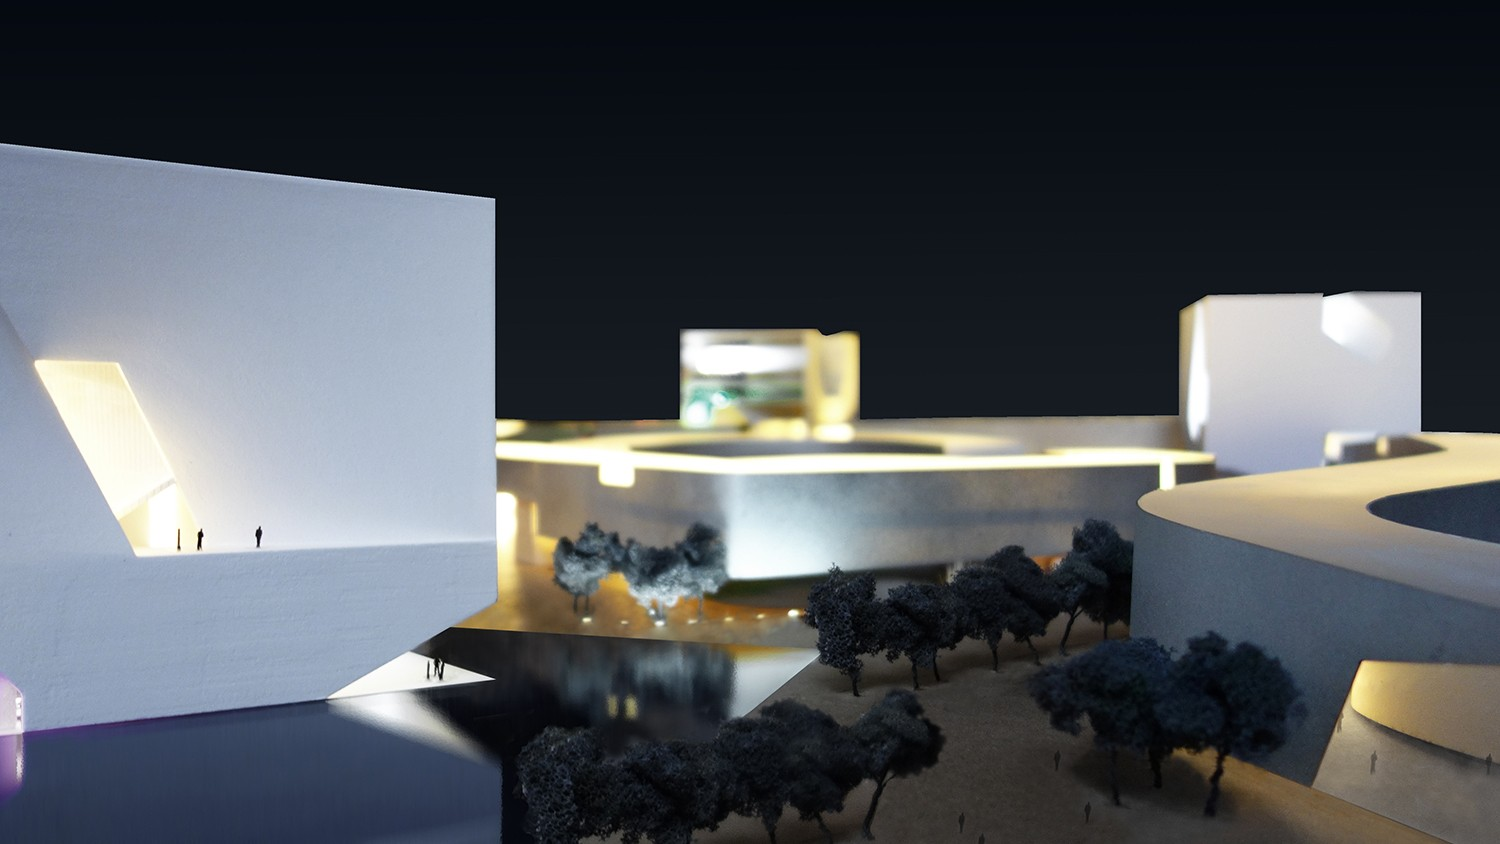 https://stevenholl.sfo2.digitaloceanspaces.com/uploads/projects/project-images/StevenHollArchitects_Qingdao_2_s_touched_WH.jpg